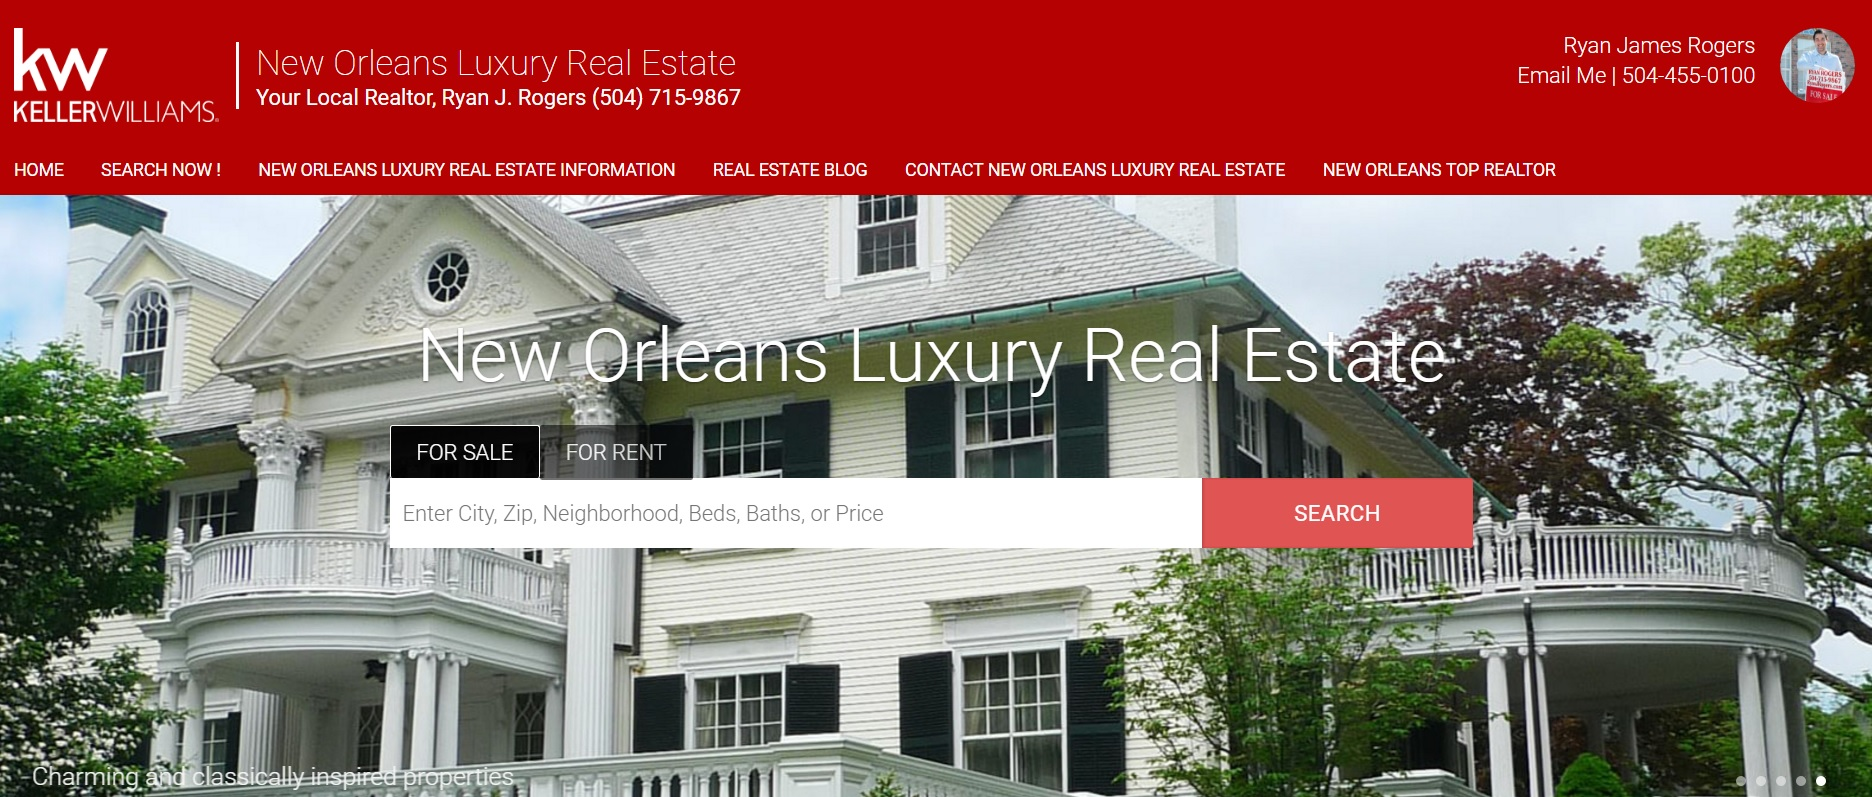 New Orleans Luxury Real Estate